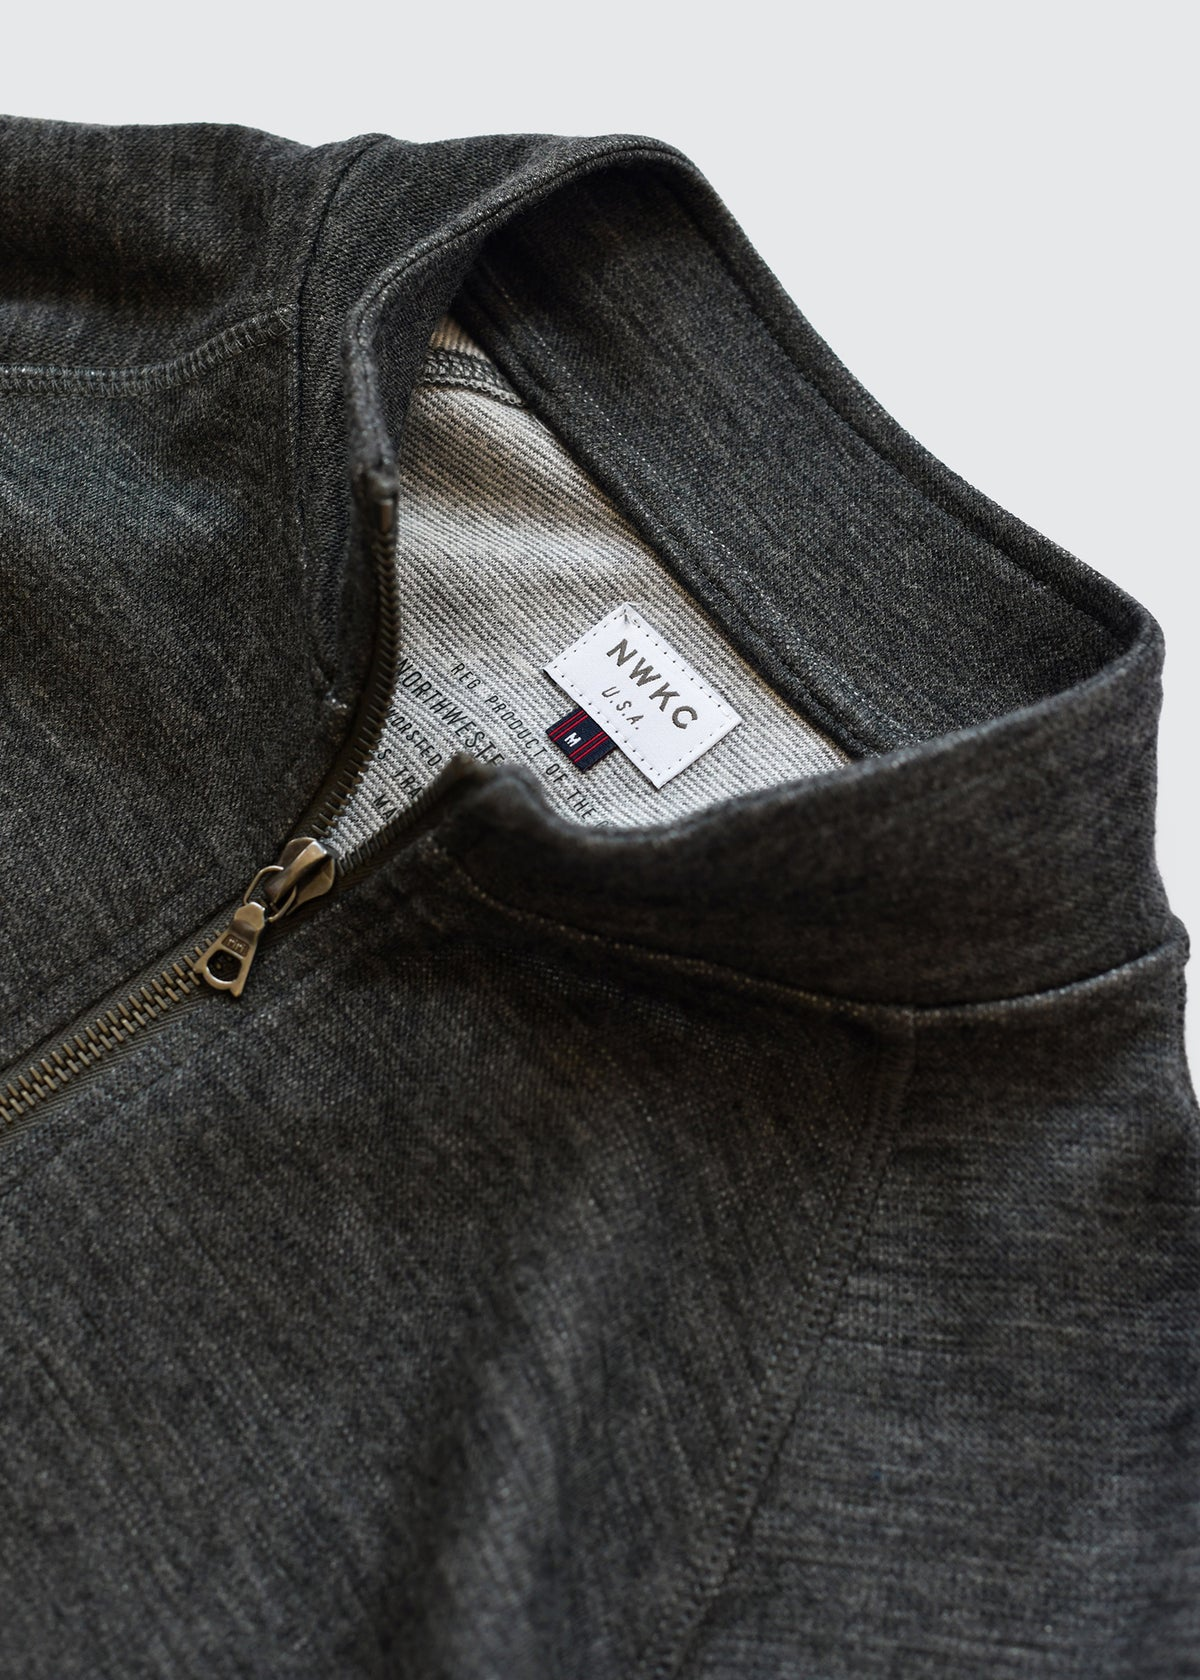 009 - SHORT COLLAR ZIP - CHARCOAL - Wilson & Willy's - MPLS Neighbor Goods